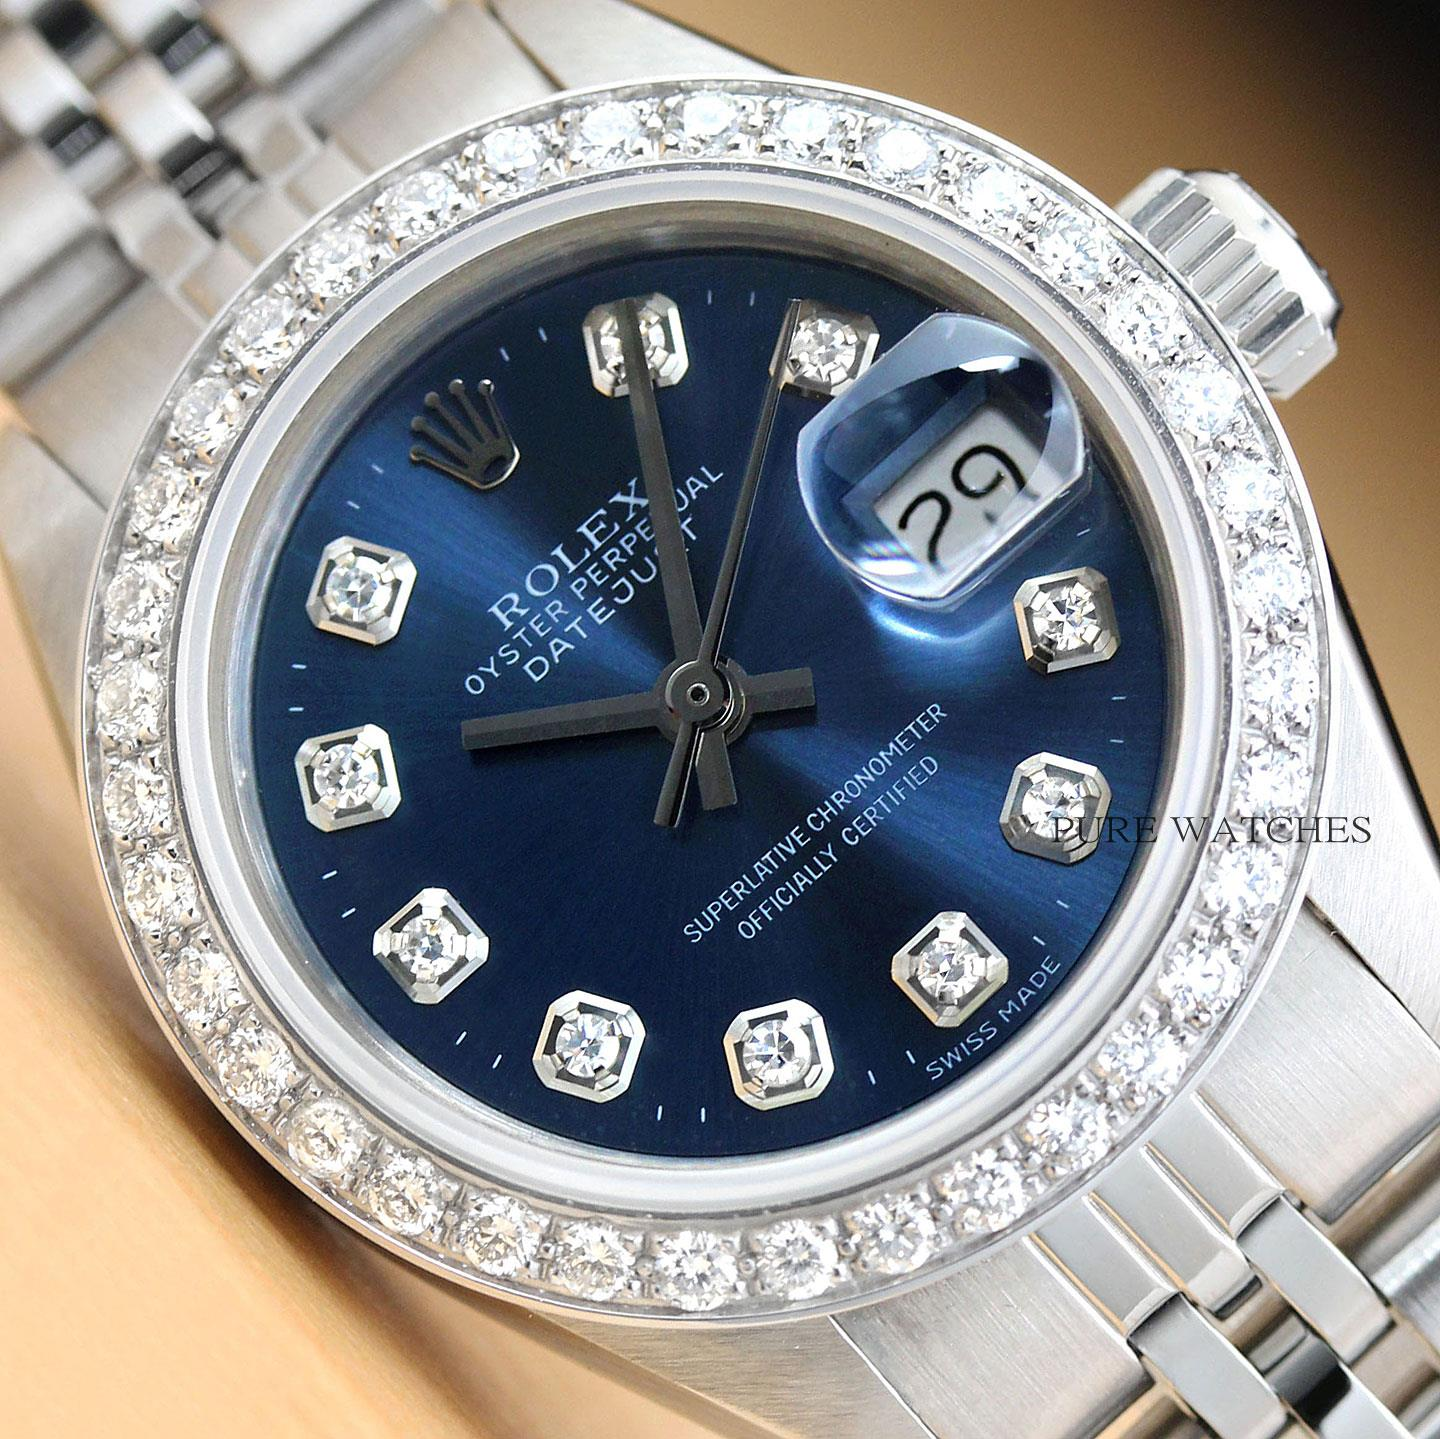 Details about LADIES ROLEX BLUE DIAMOND DIAL DATEJUST 18K WHITE GOLD \u0026  STAINLESS STEEL WATCH